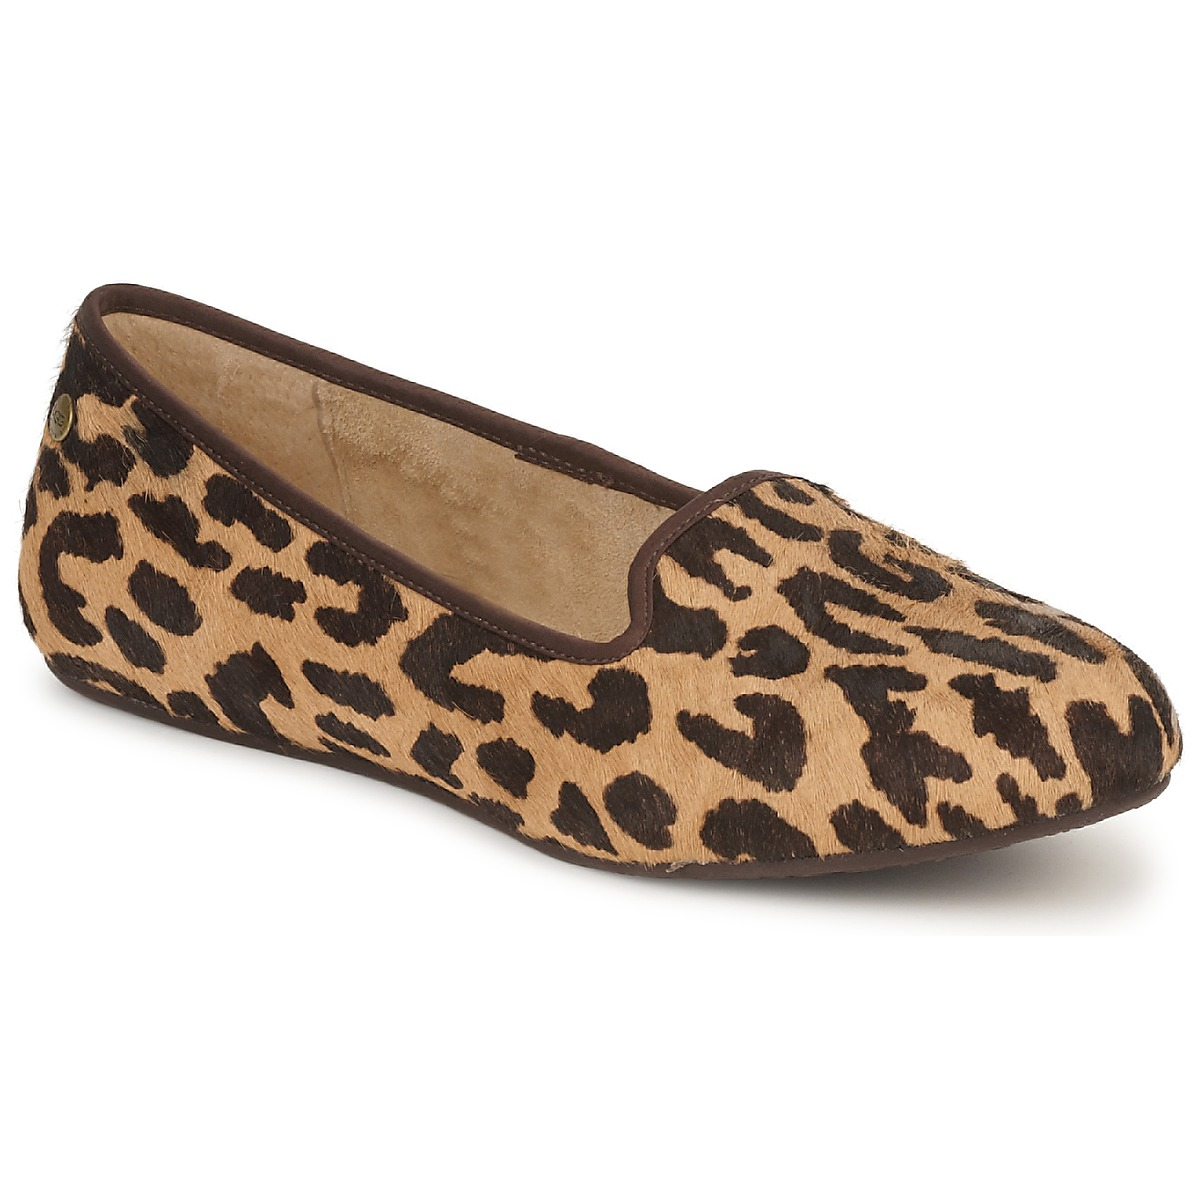 Slippers UGG ALLOWAY CHEETAH PRINT - Free next day delivery with Spartoo.co.uk ! - Shoes Women £ 94.99